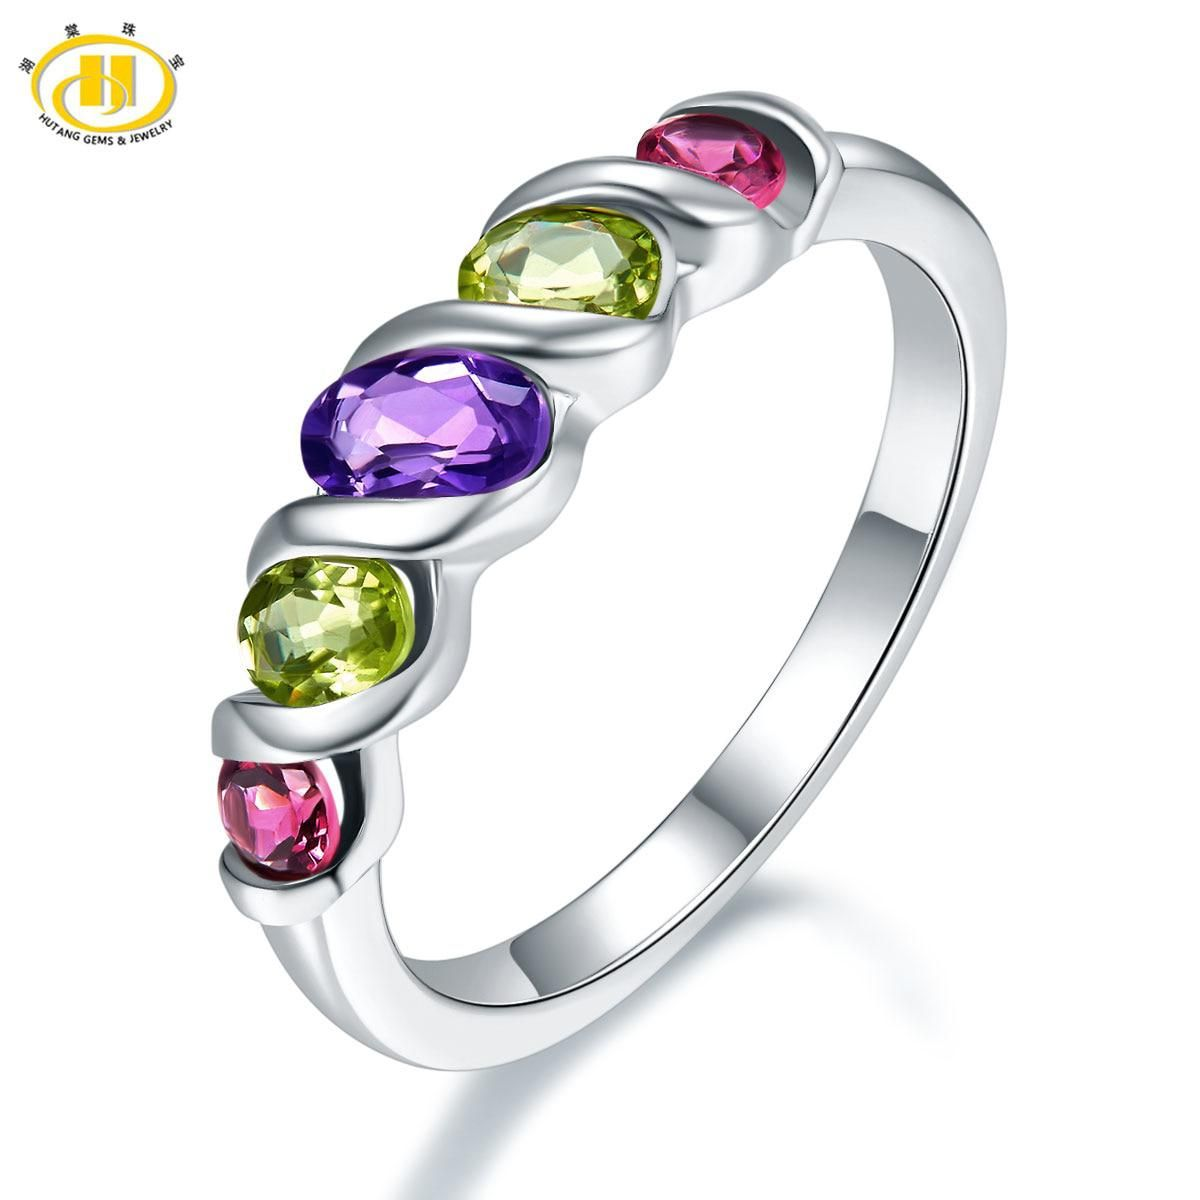 18632d4f3 Hutang Natural Multi-color Gemstone Ring Solid 925 Sterling Silver Rings  Amethyst Peridot Rhodolite Fine Jewelry For Women Gift.